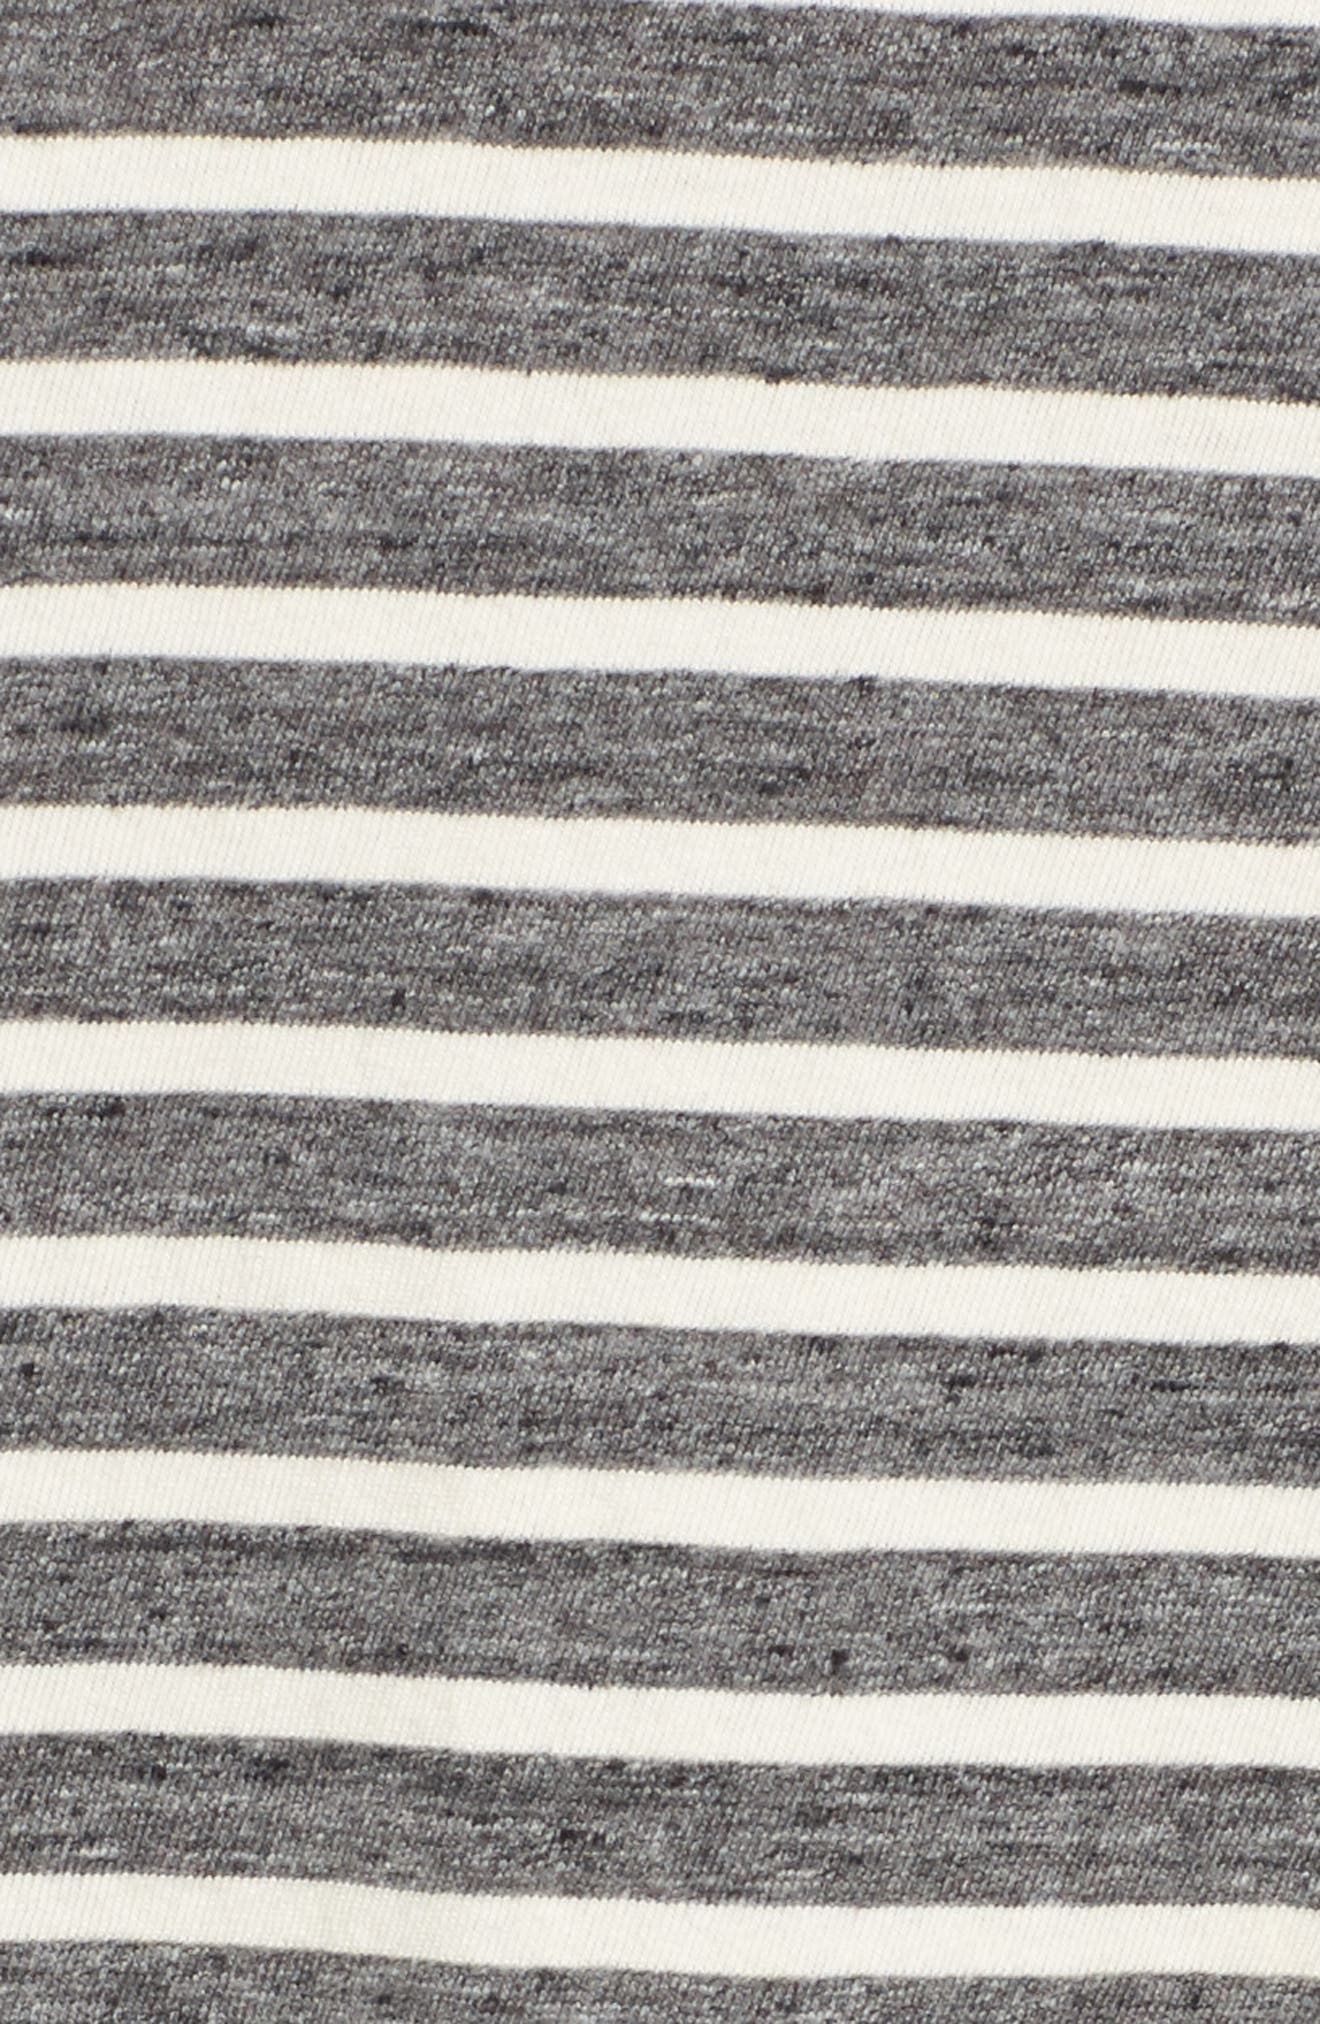 Stripe Slouchy Tee,                             Alternate thumbnail 5, color,                             Charcoal Anchor Stripe